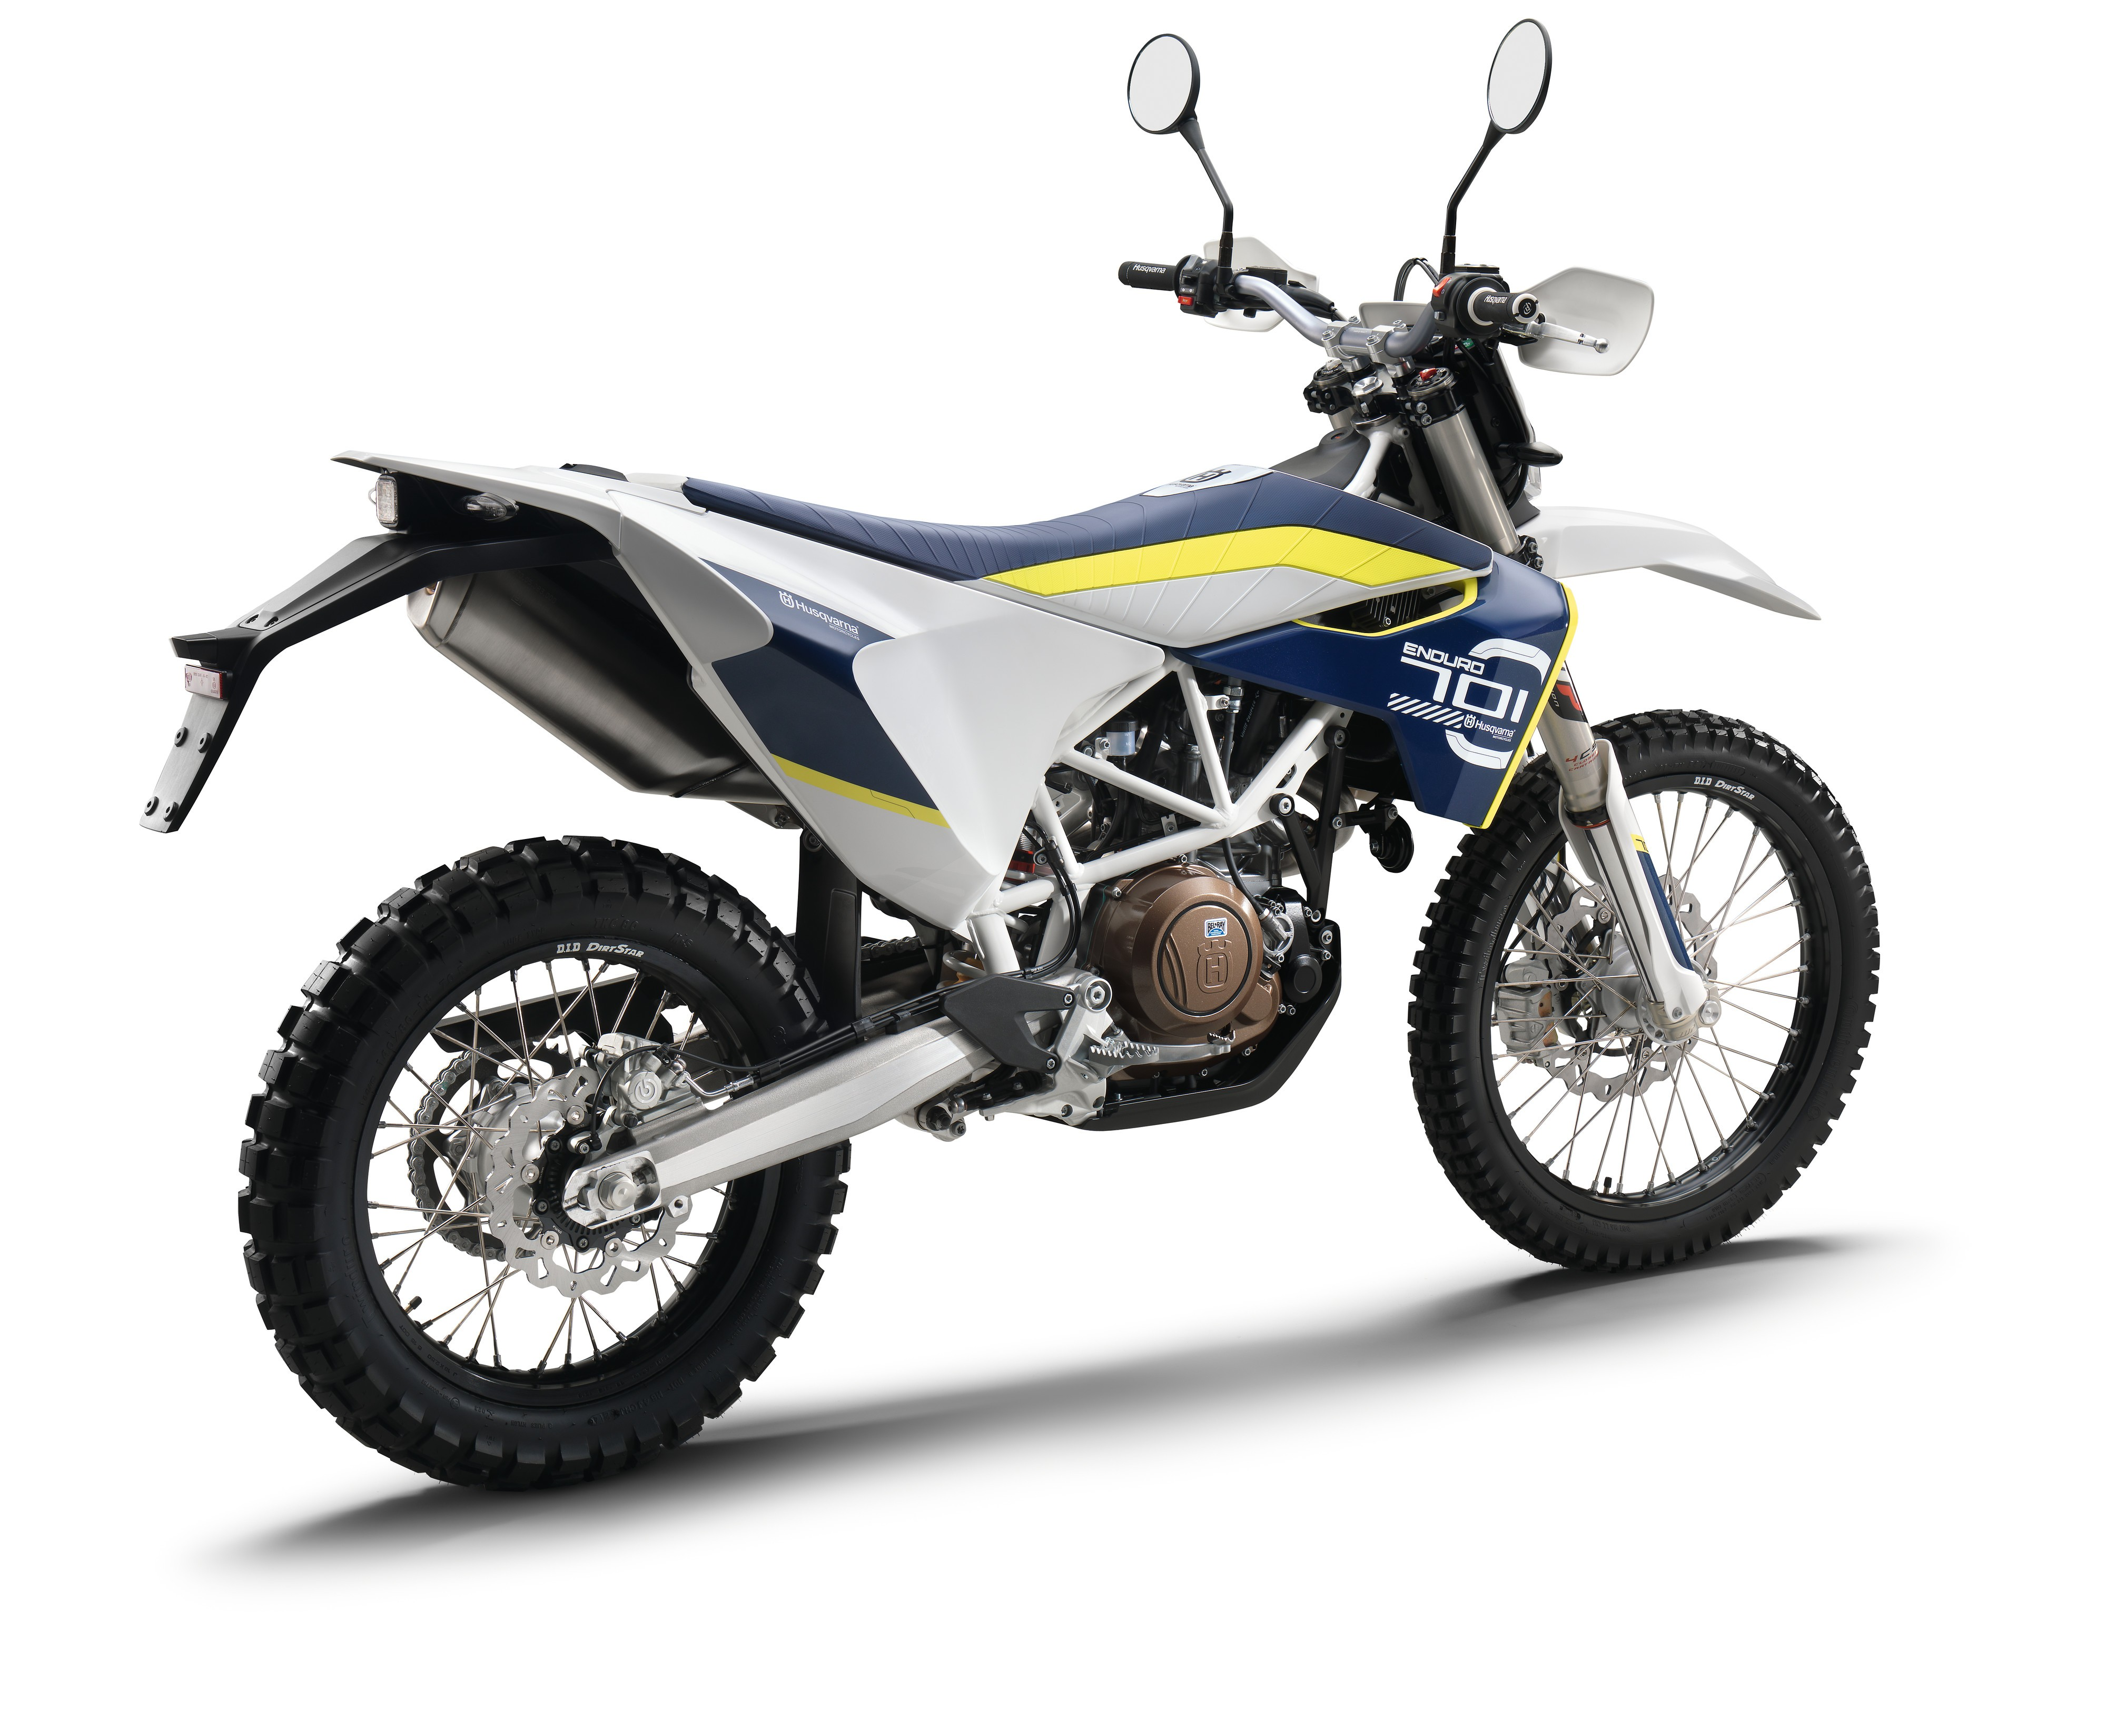 Honda Build And Price >> 2016 Husqvarna 701 Enduro Is Here, Ready to Rip the Off ...